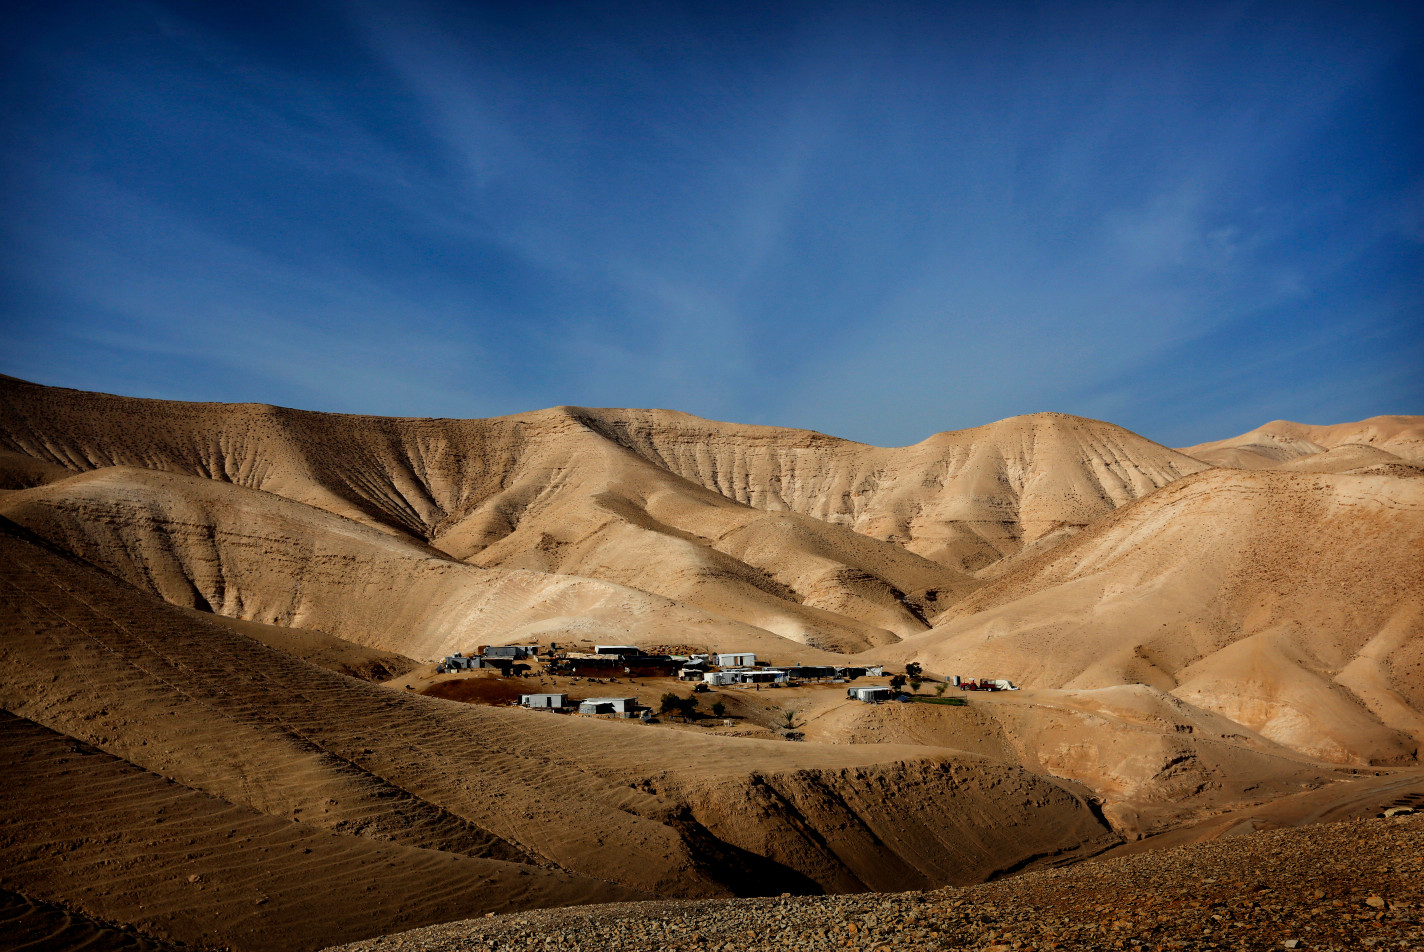 WEST BANK BEDOUIN